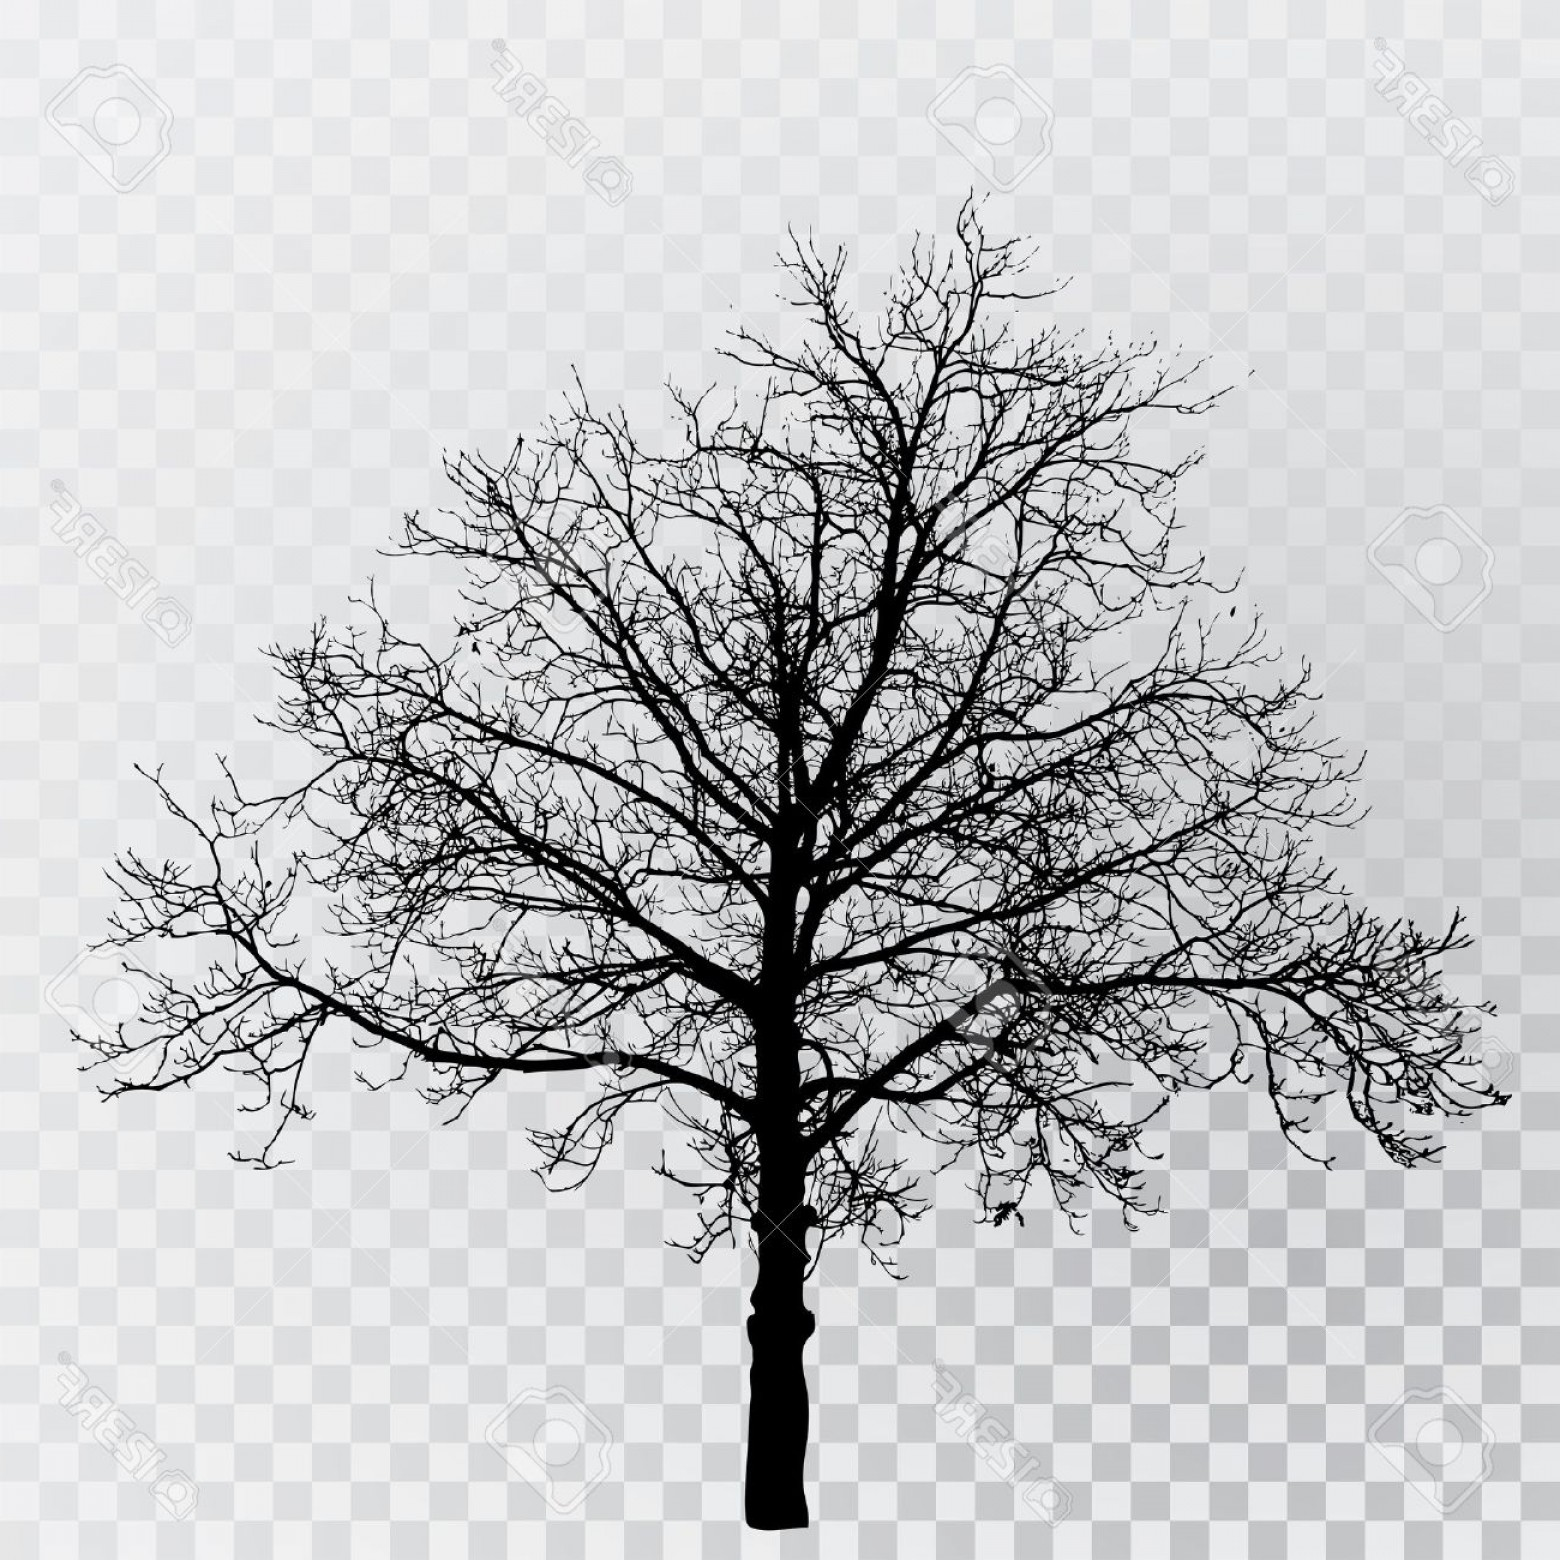 Winter Tree Silhouette Vector: Photostock Vector Drawing Of The Transparent Silhouette Winter Tree